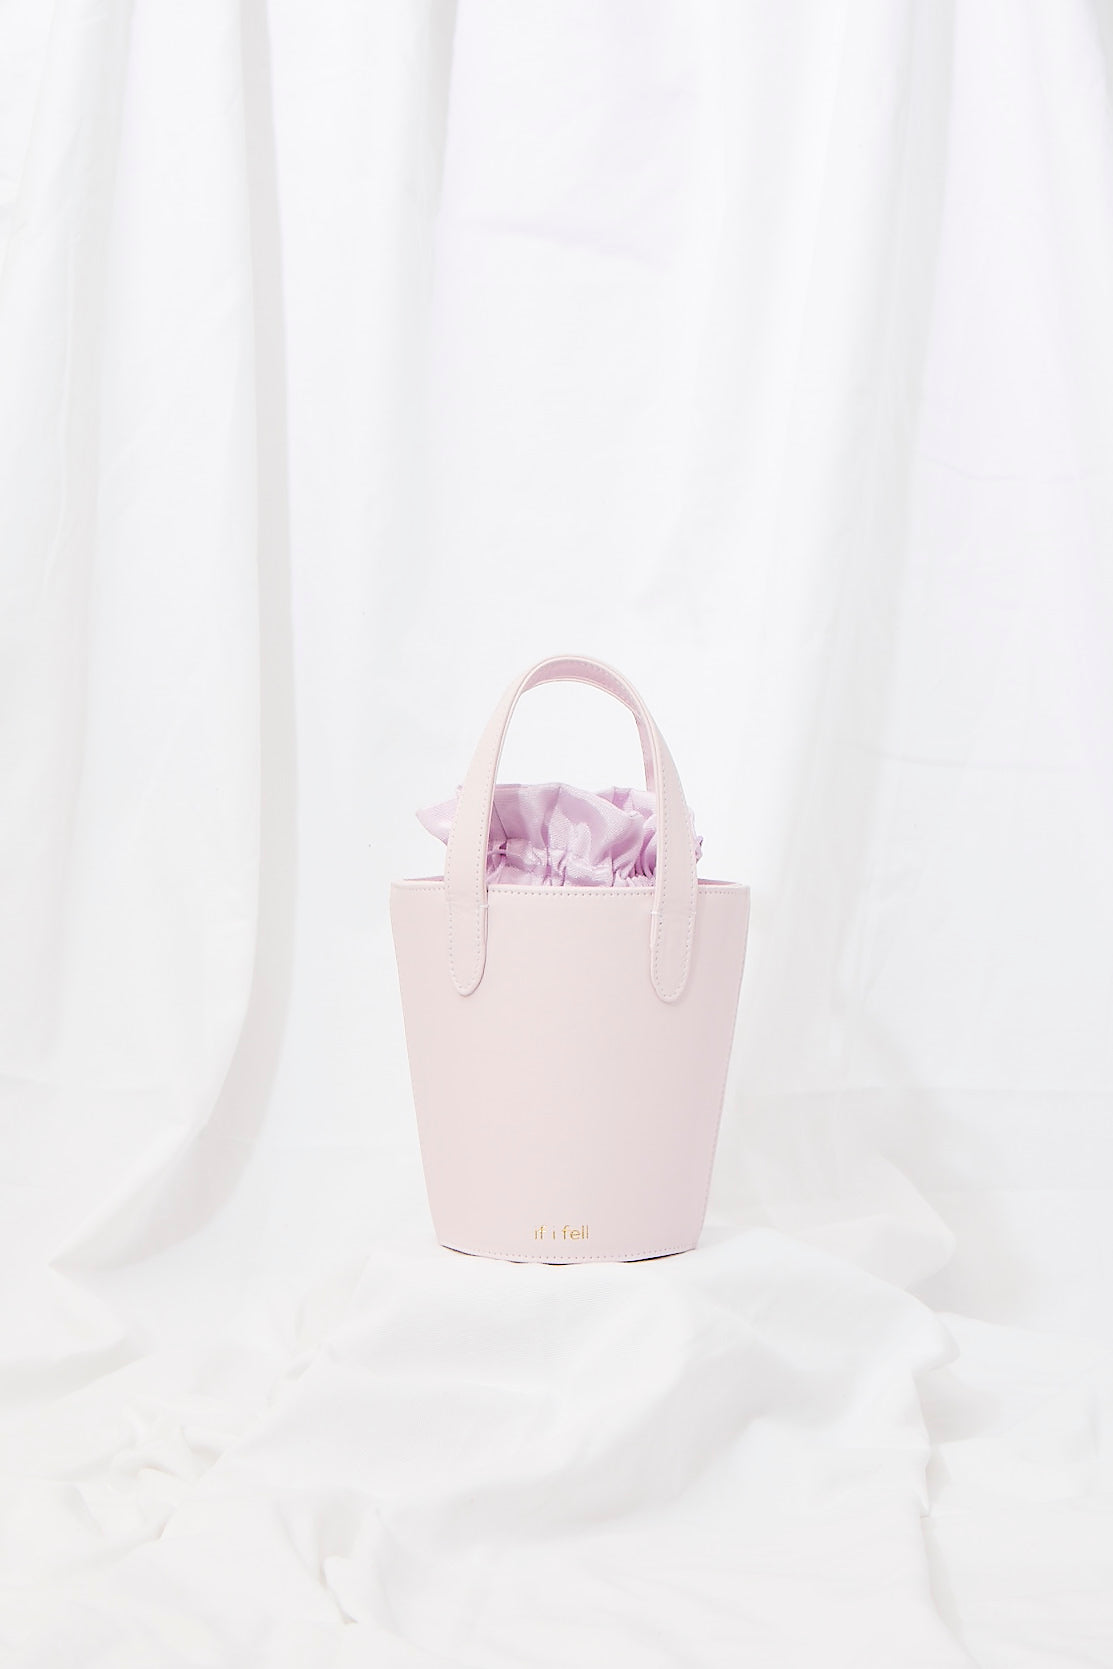 mini Fell Bag in Lavender